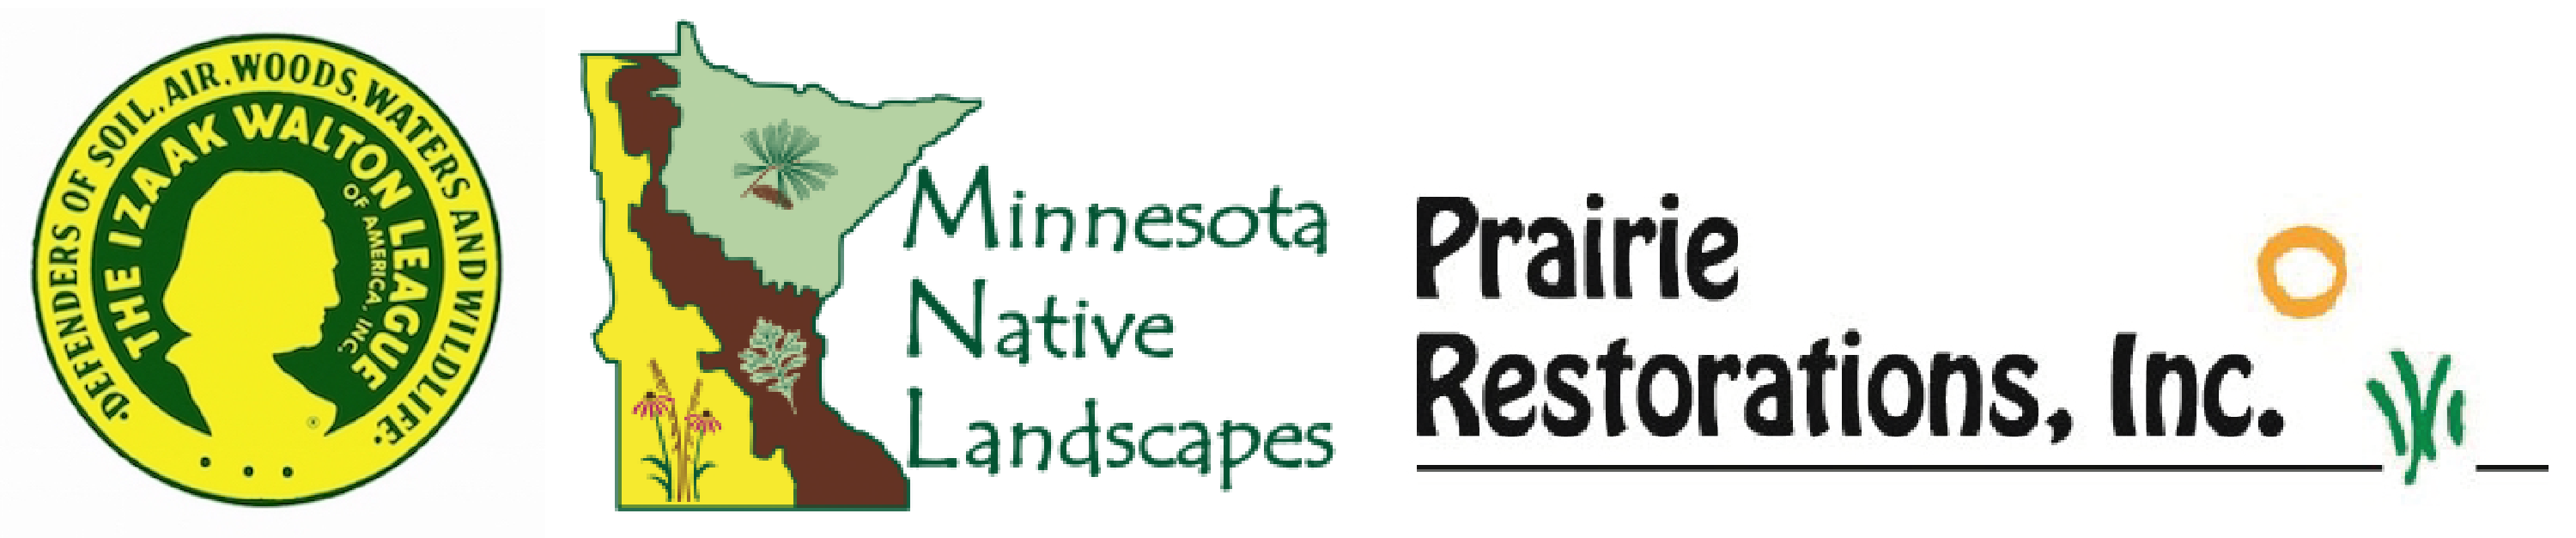 2018 DWN Sponsors: Isaac Walton League, Minnesota Native Landscapes and Prairie Restorations